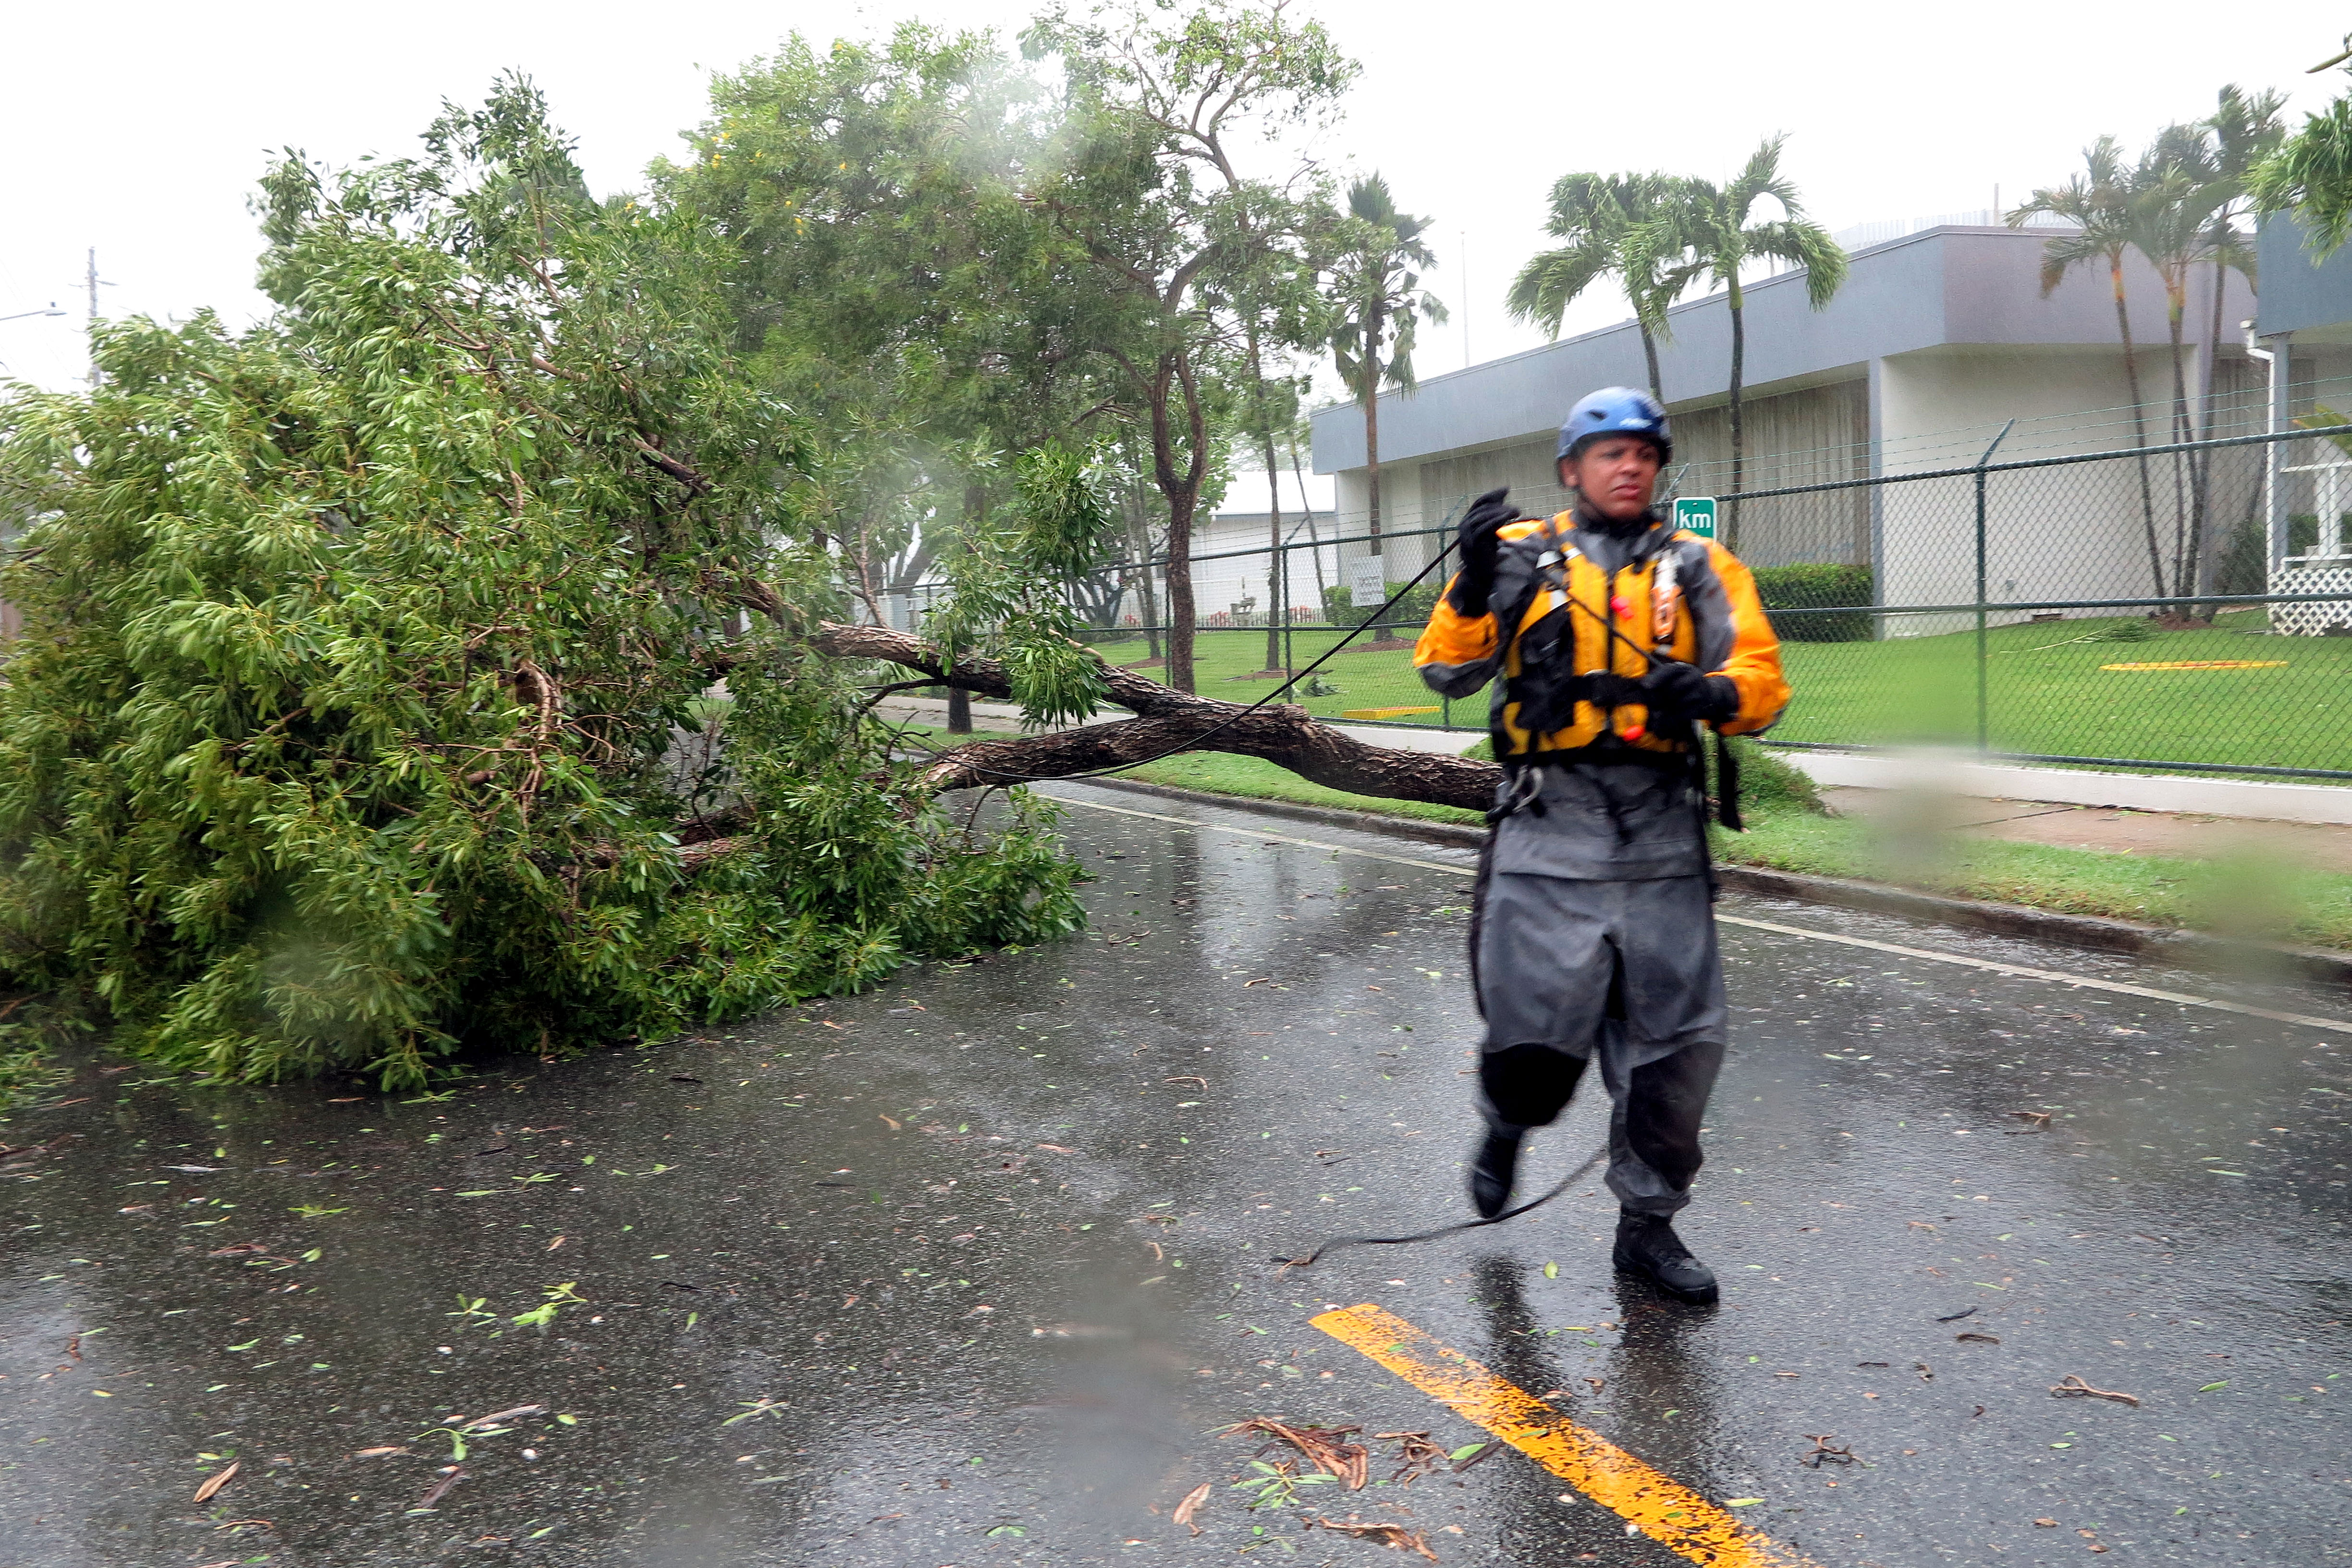 Julio Feliciano ties a rope to a fallen tree to get it pulled by a truck during a search mission, as hurricane Irma hits Puerto Rico in Fajardo, on September 6, 2017.